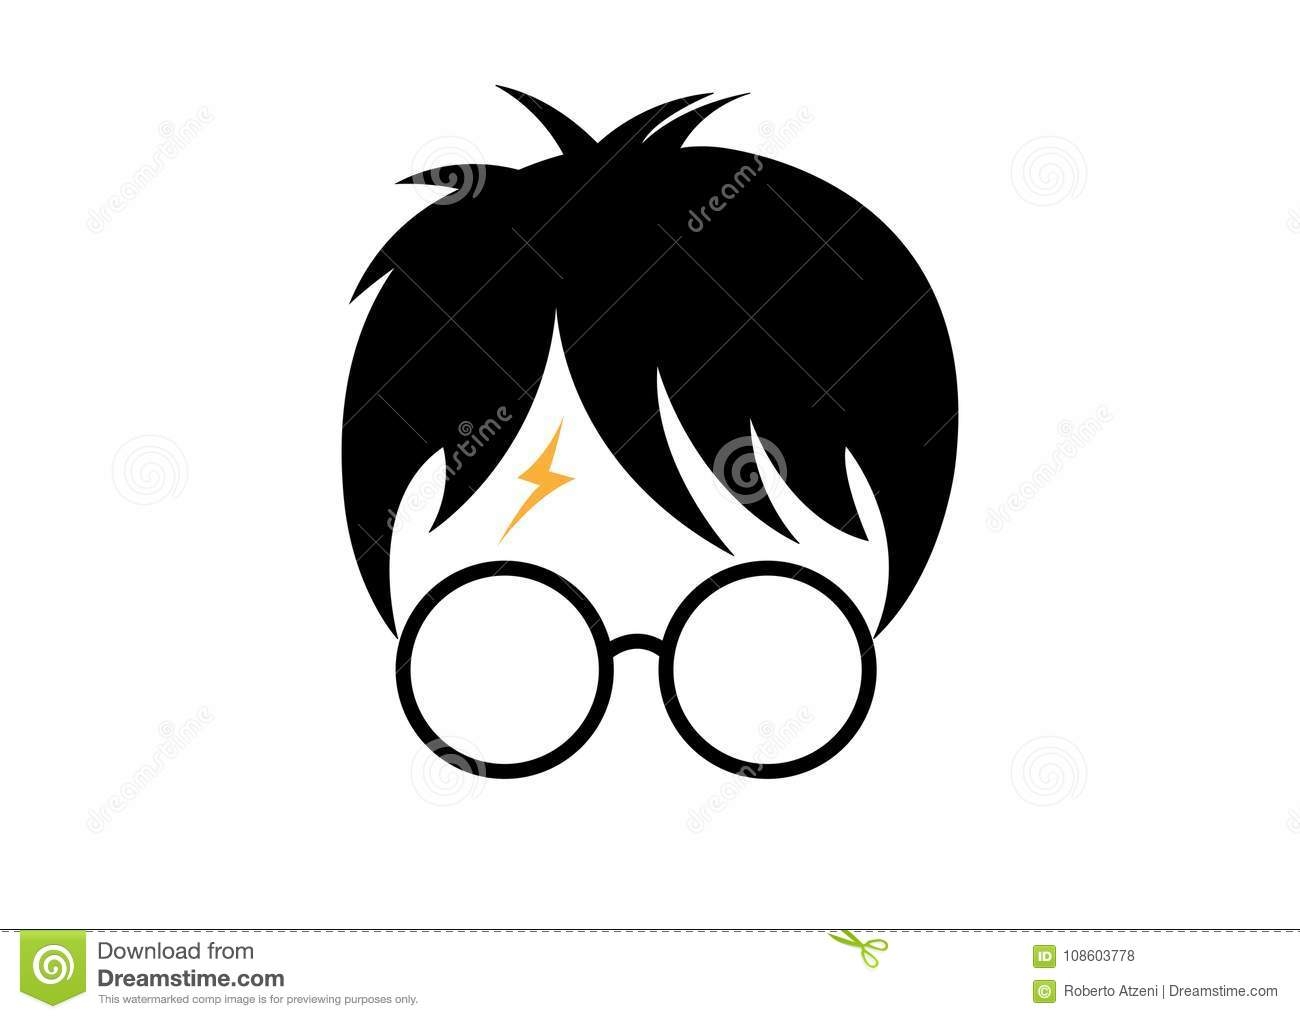 Good Wallpaper Harry Potter Cartoon - harry-potter-cartoon-icon-minimal-style-vector-108603778  Pictures_185641.jpg